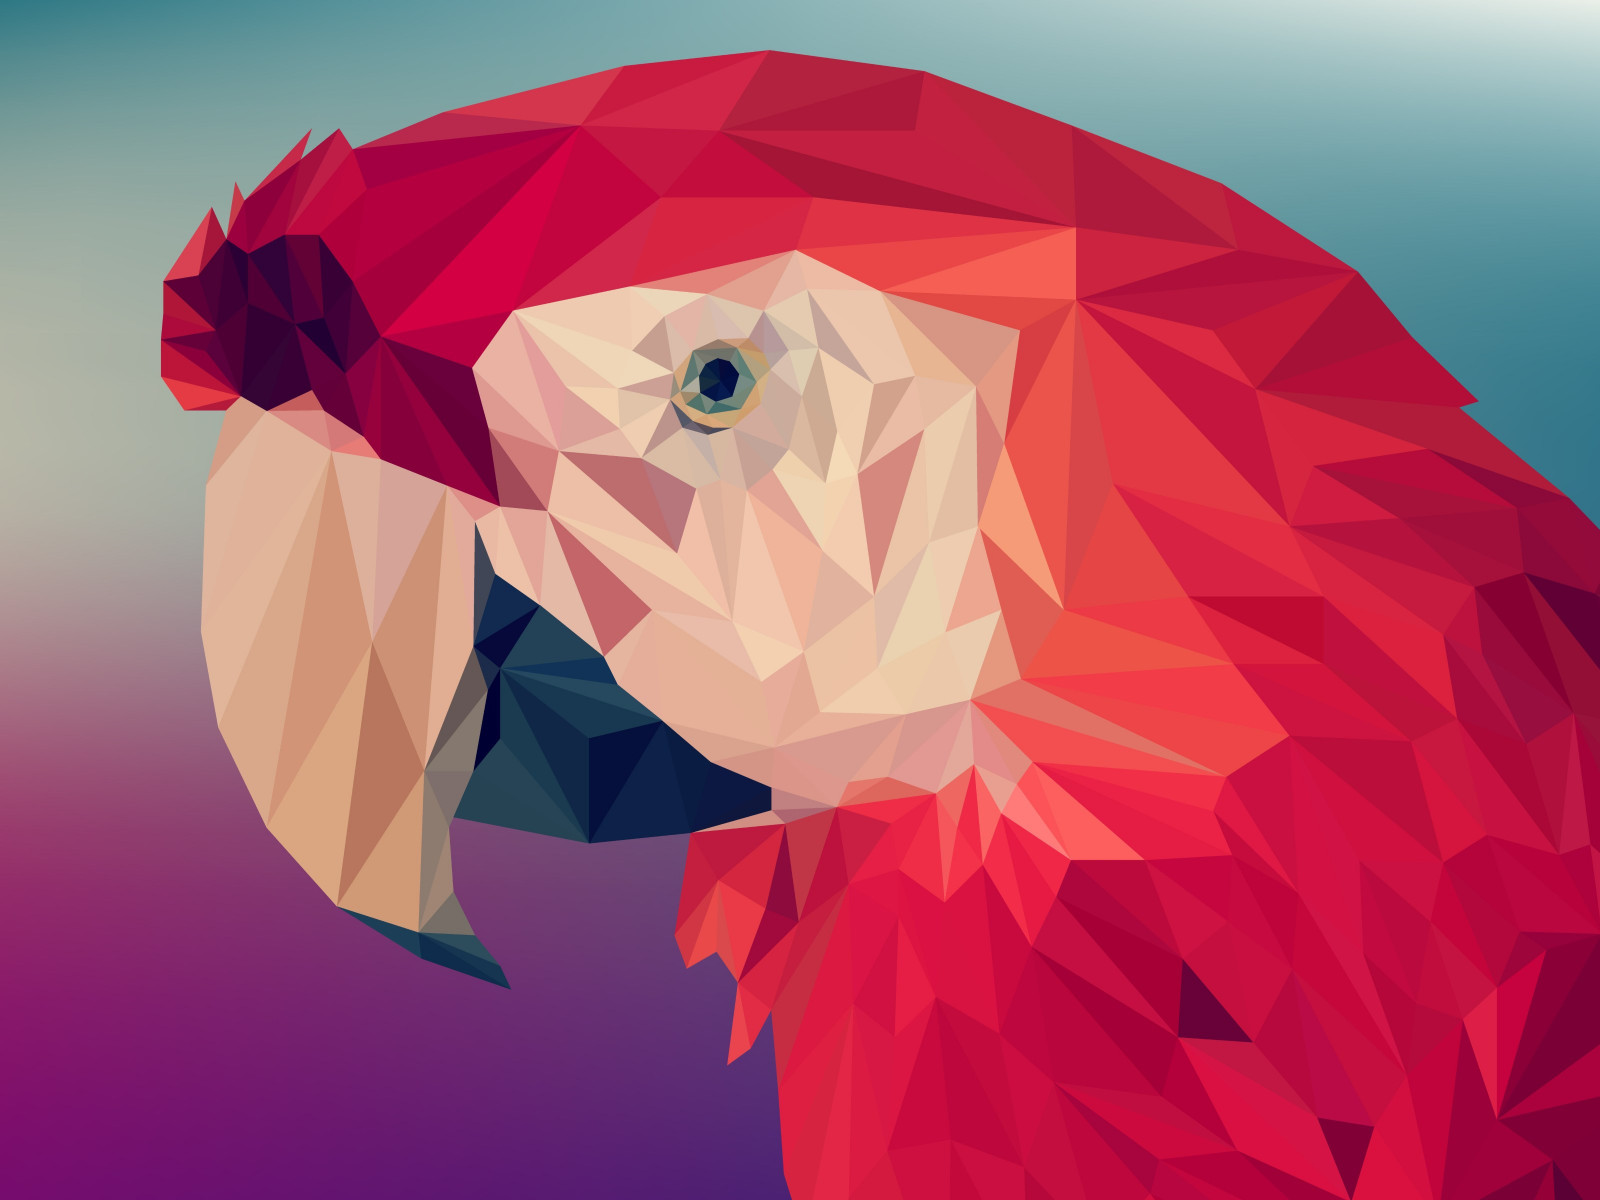 Low poly art: Red parrot wallpaper 1600x1200